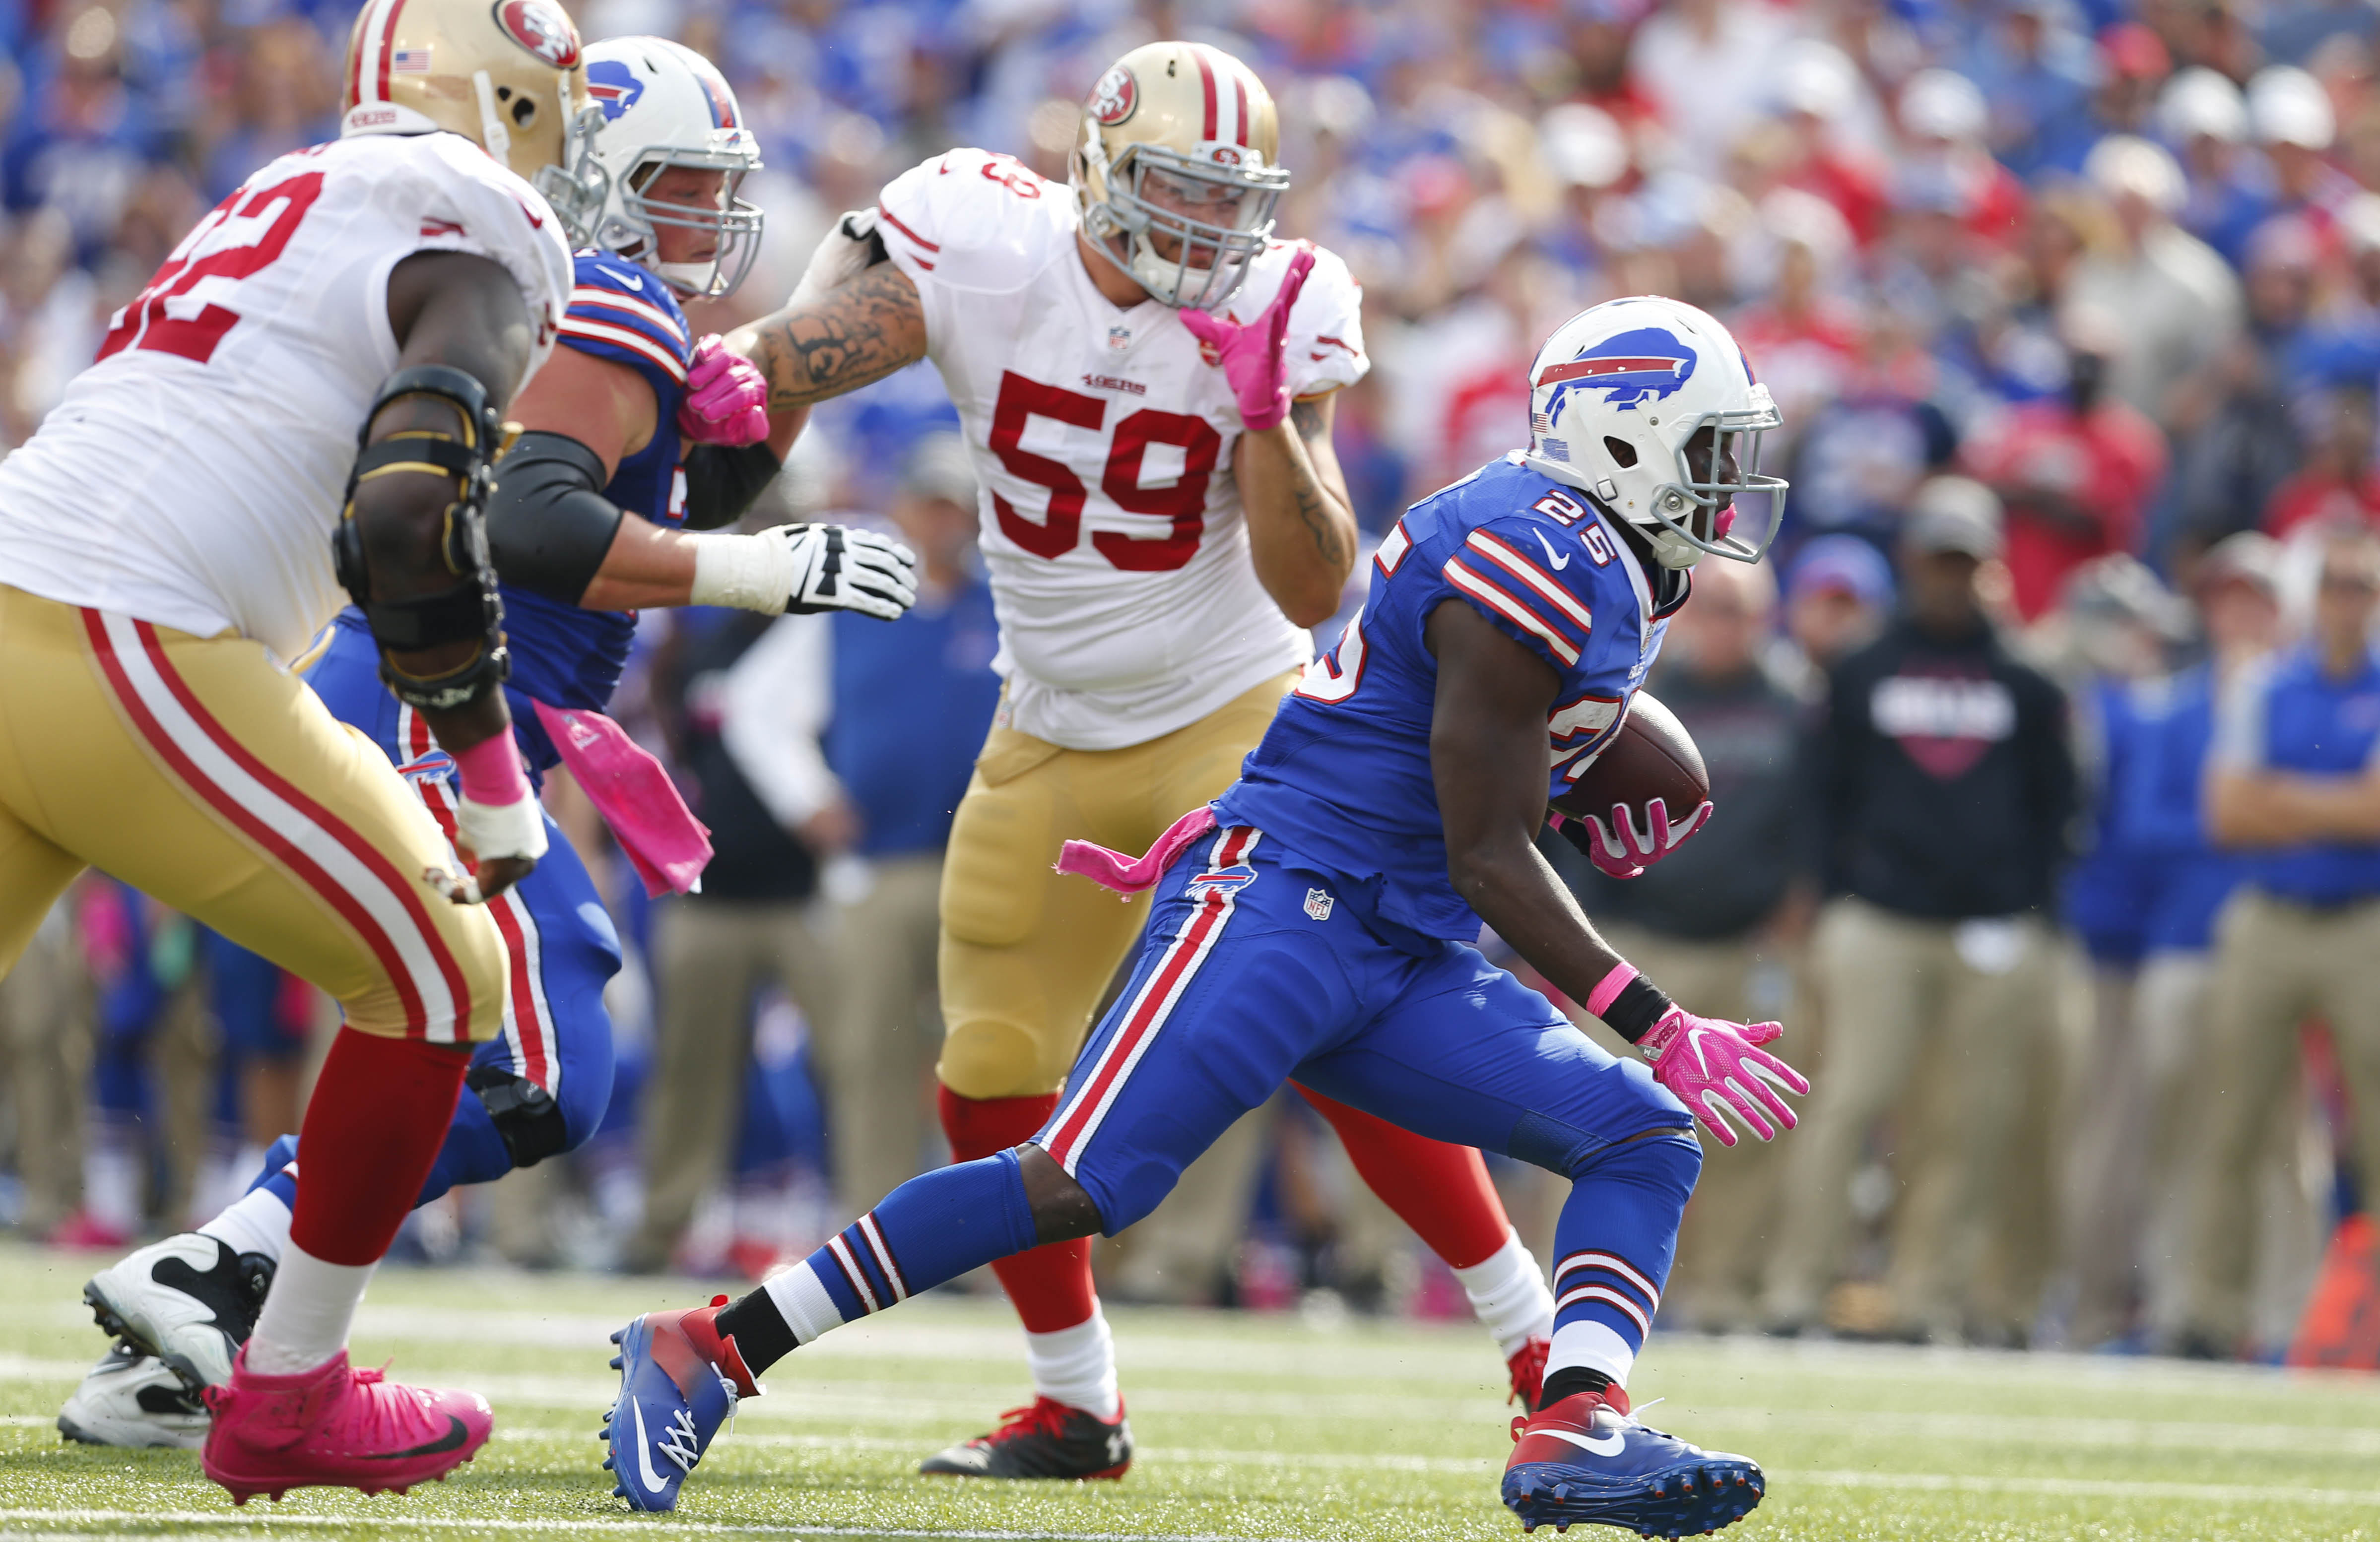 Buffalo Bills running back LeSean McCoy finds a huge hole to run through en route to his second touchdown of the game against the San Francisco 49ers during the second quarter.   (Mark Mulville/The Buffalo News)